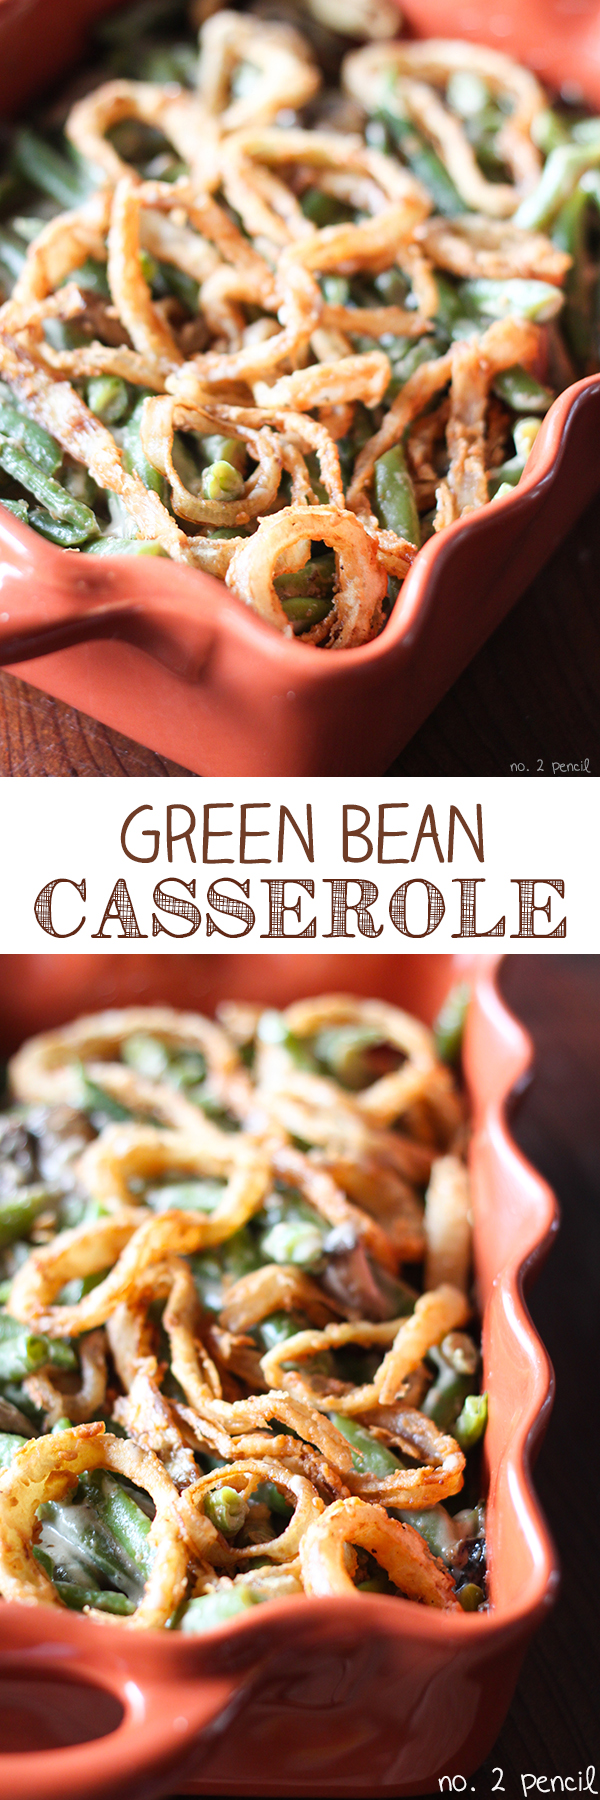 Homemade Green Bean Casserole with Homemade Onions Rings